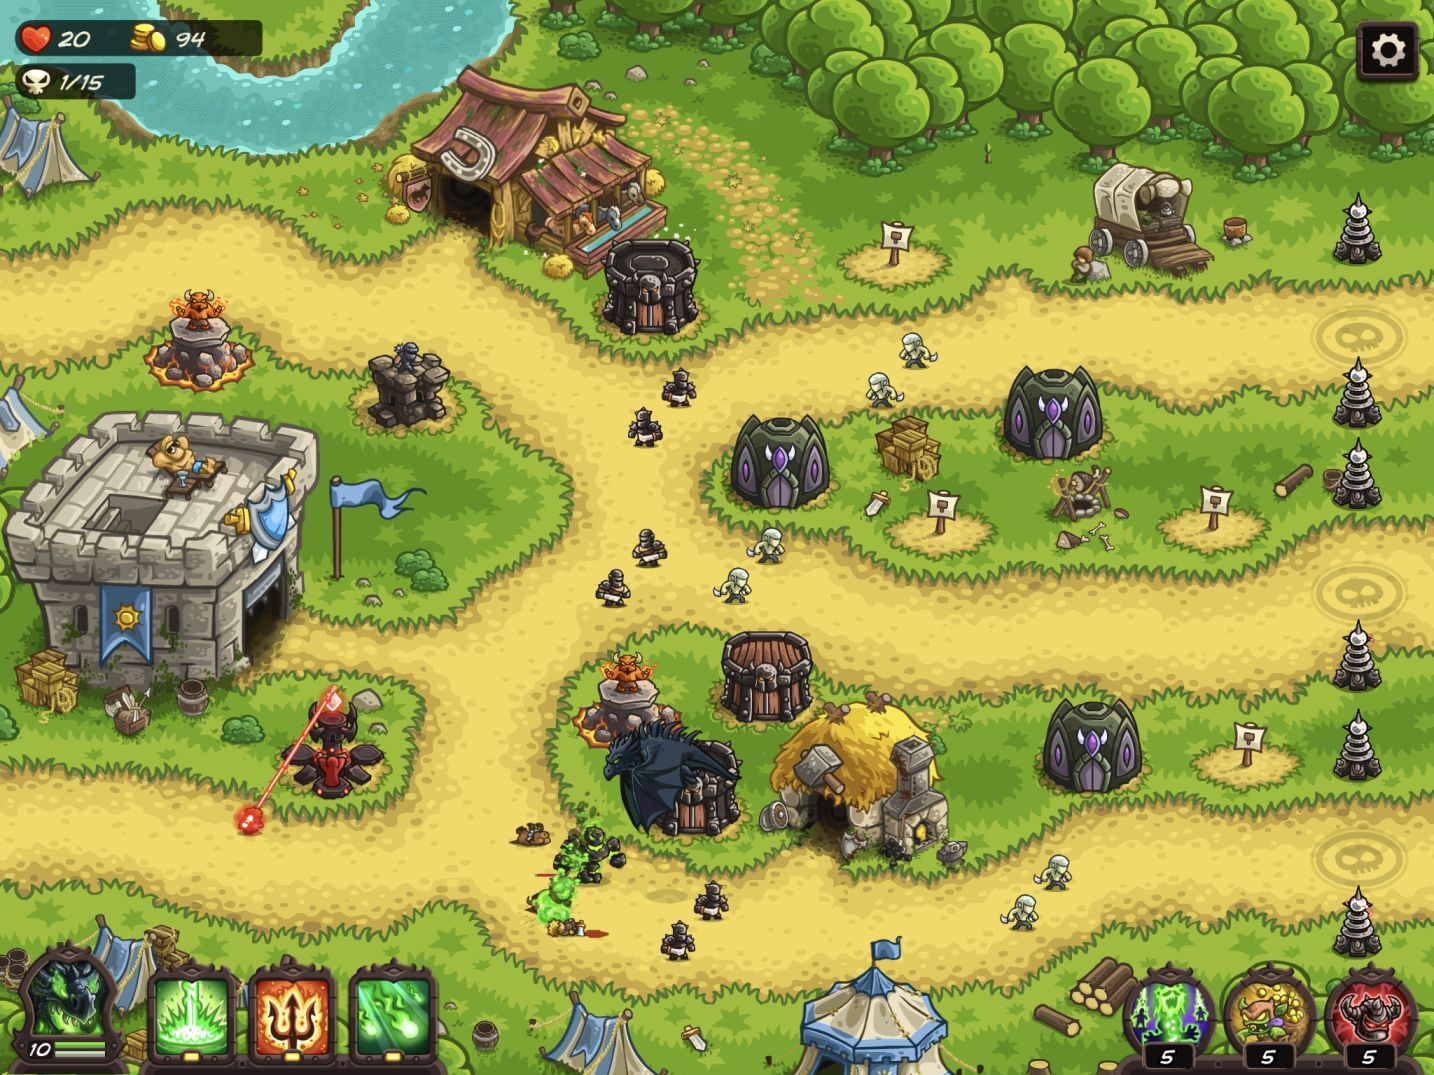 Kingdom Rush Vengeance (copie d'écran 21 sur Android)